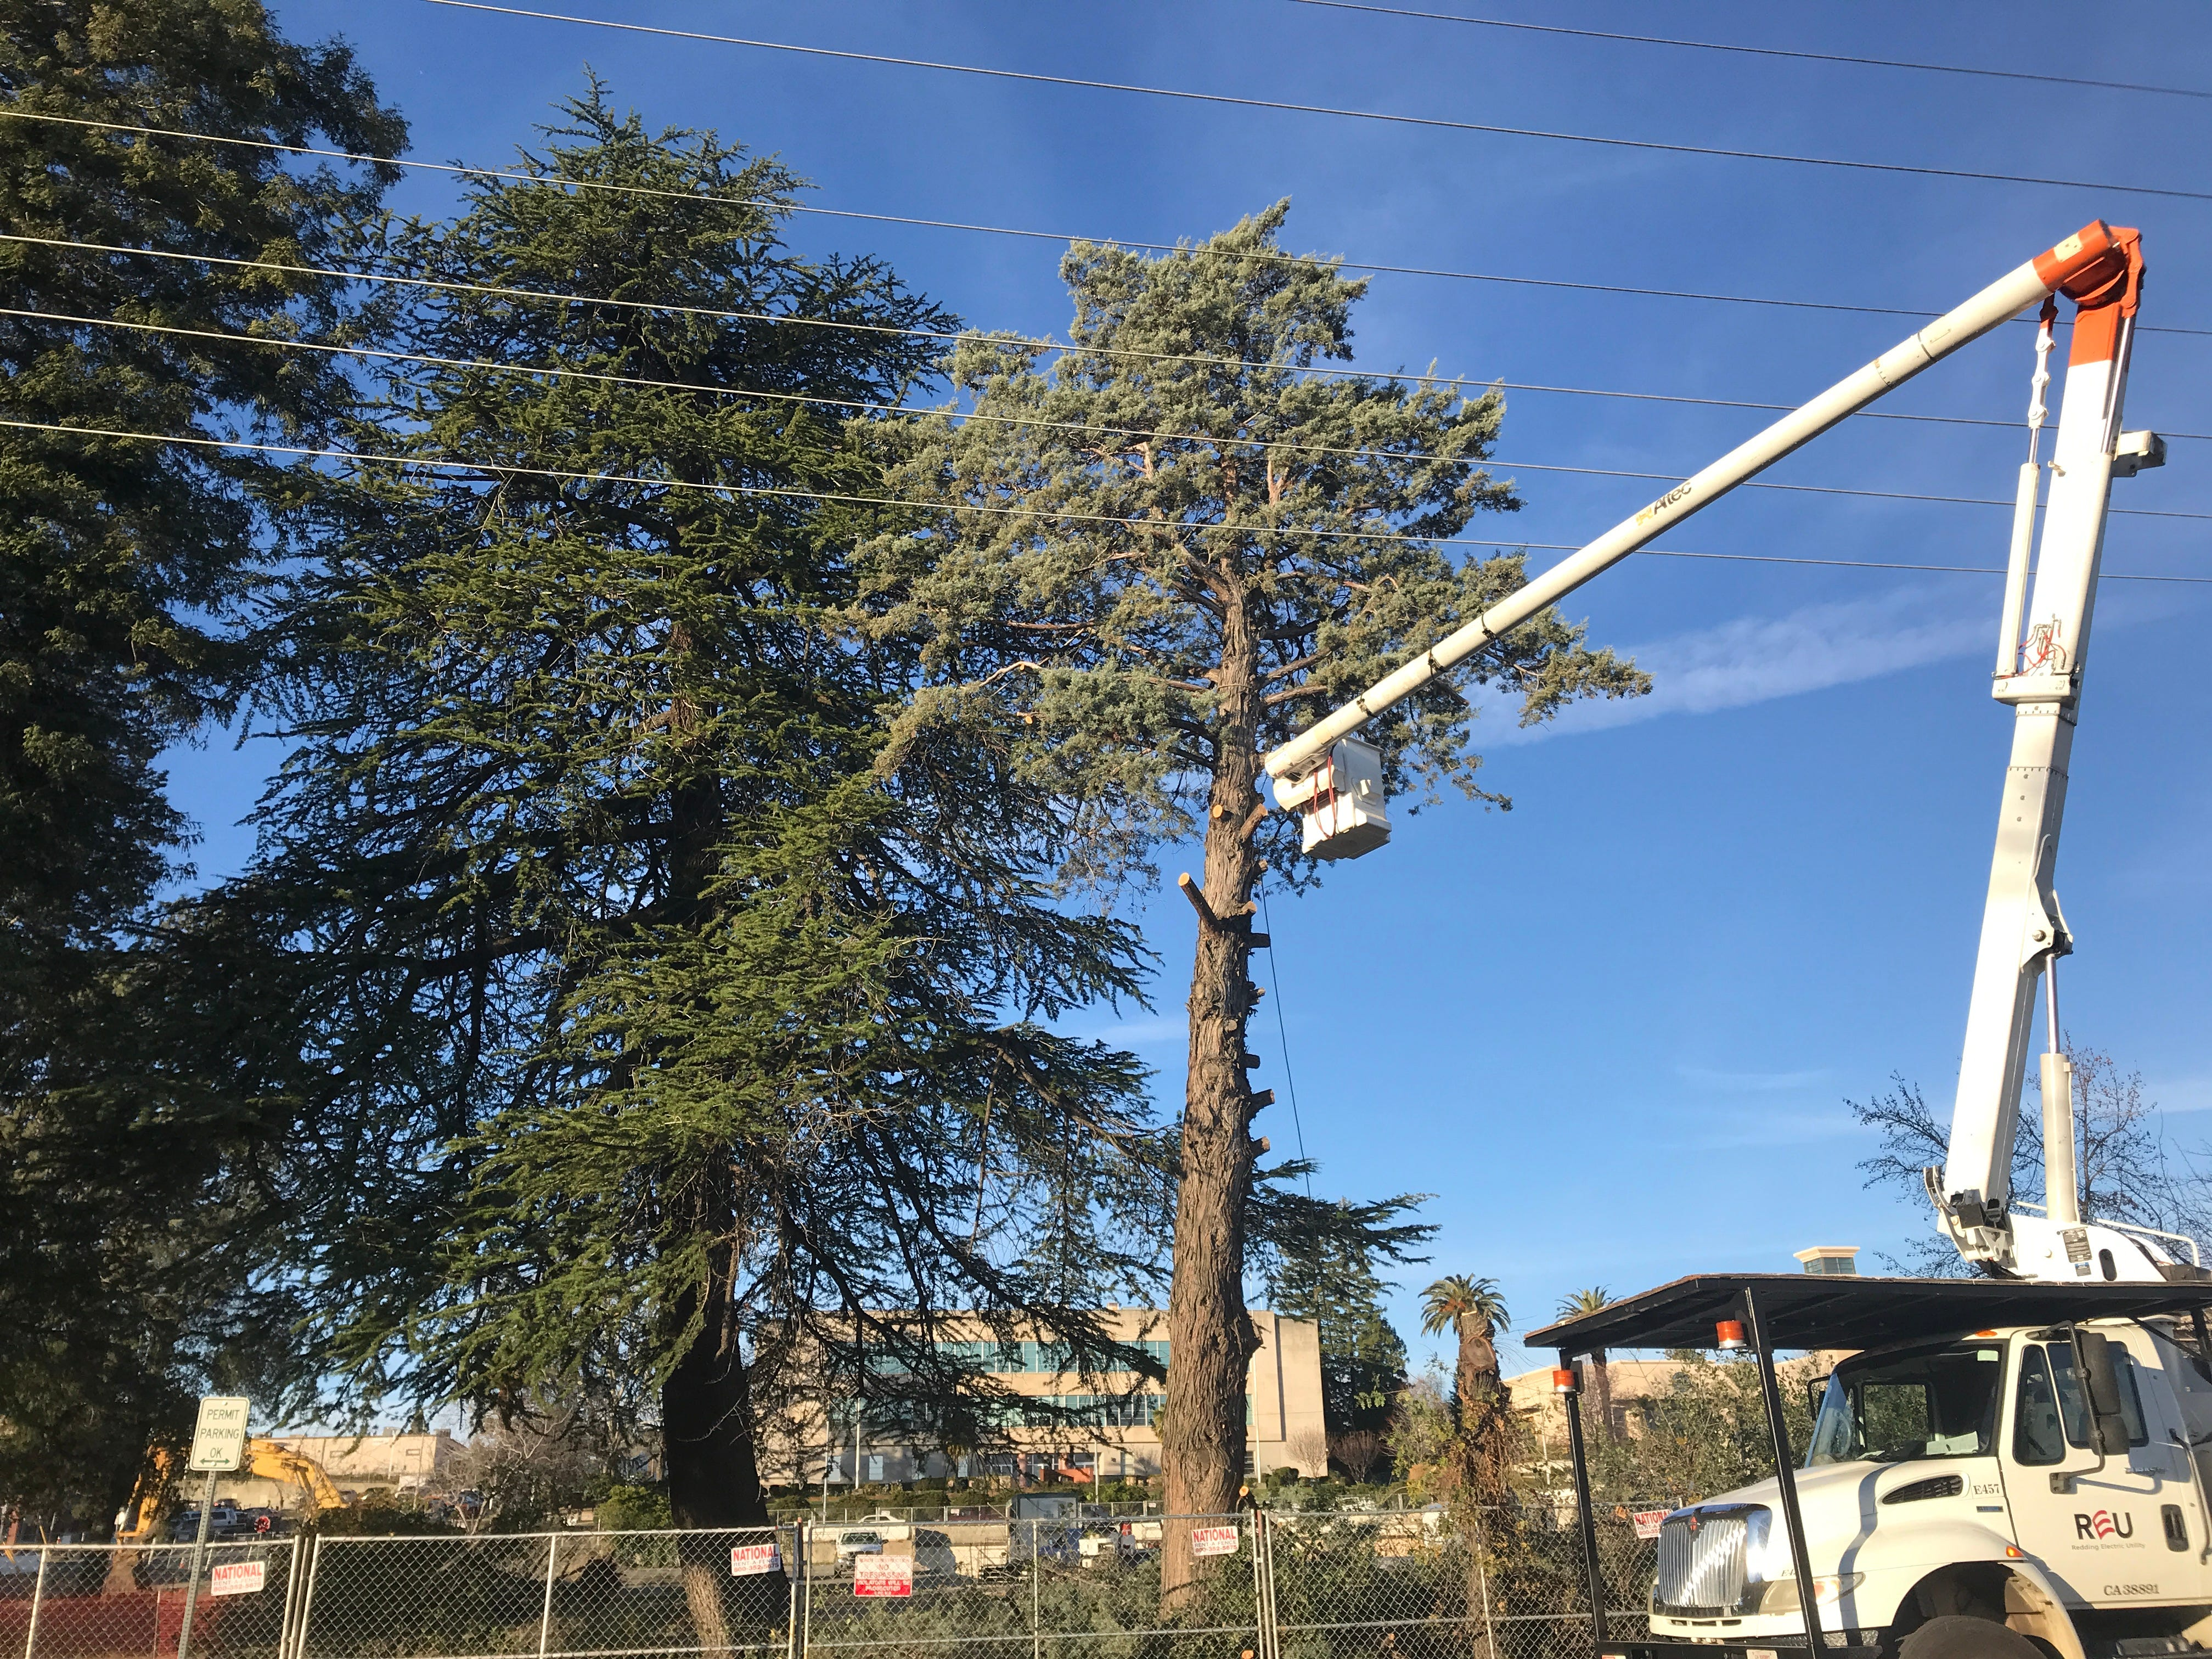 REU crews on Monday chopped down three trees to make room for the new Shasta County Courthouse in downtown Redding.